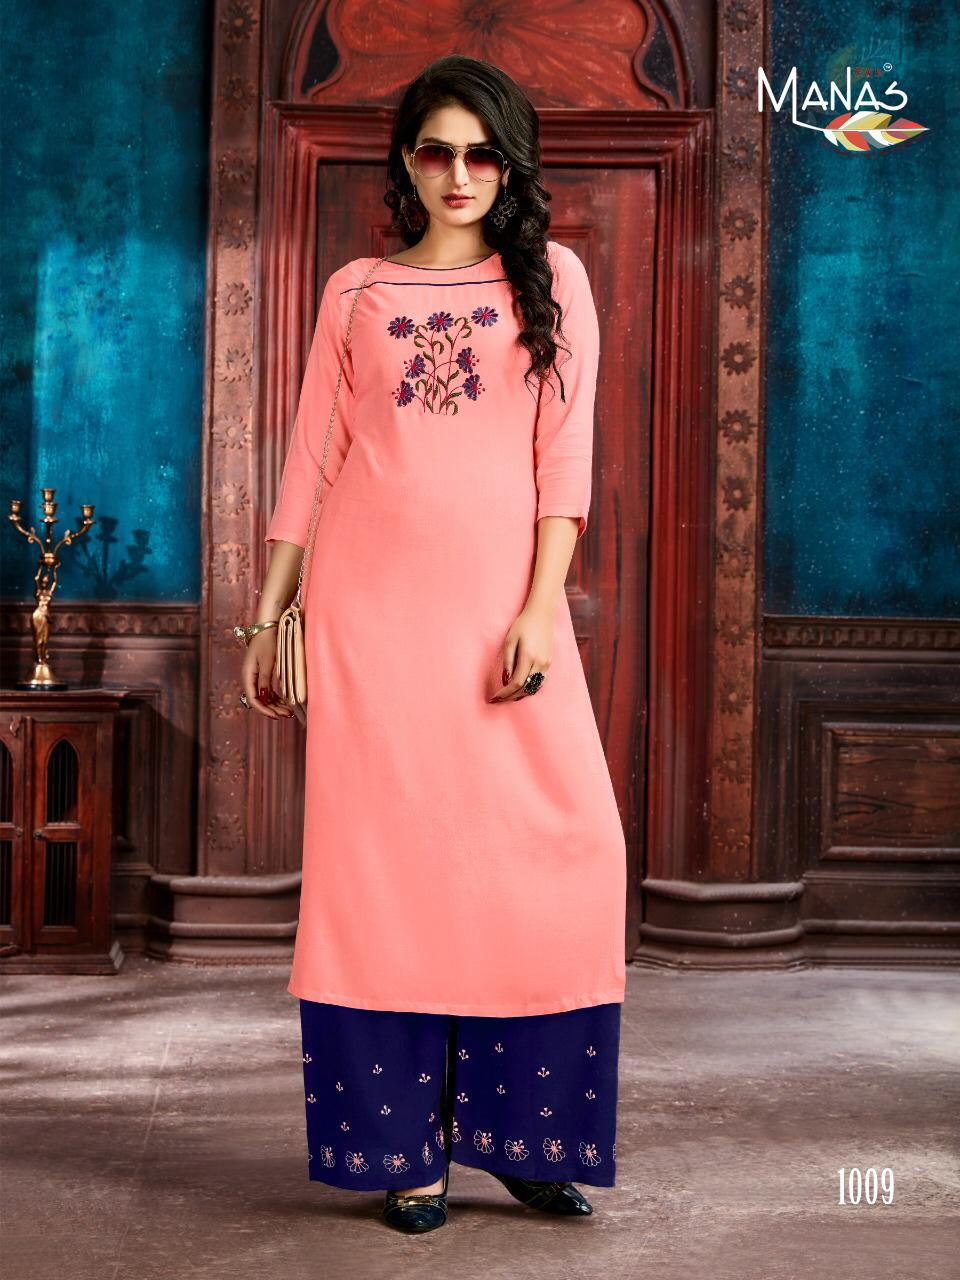 Manas Anishka Vol 3 collection 5